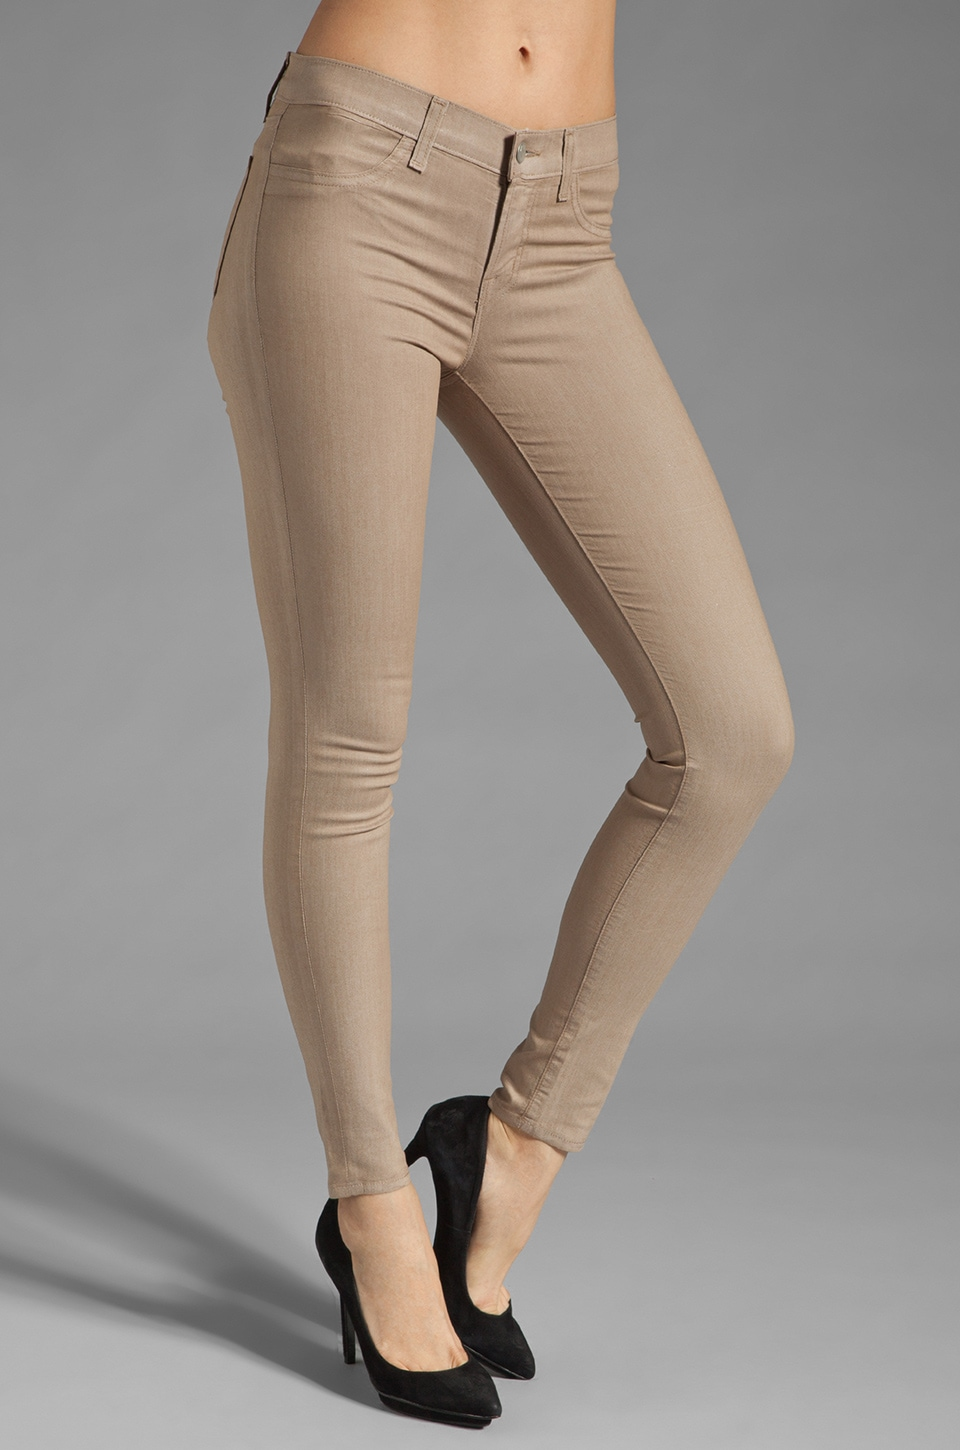 J Brand Low Rise Coated Legging in Coated Kenya